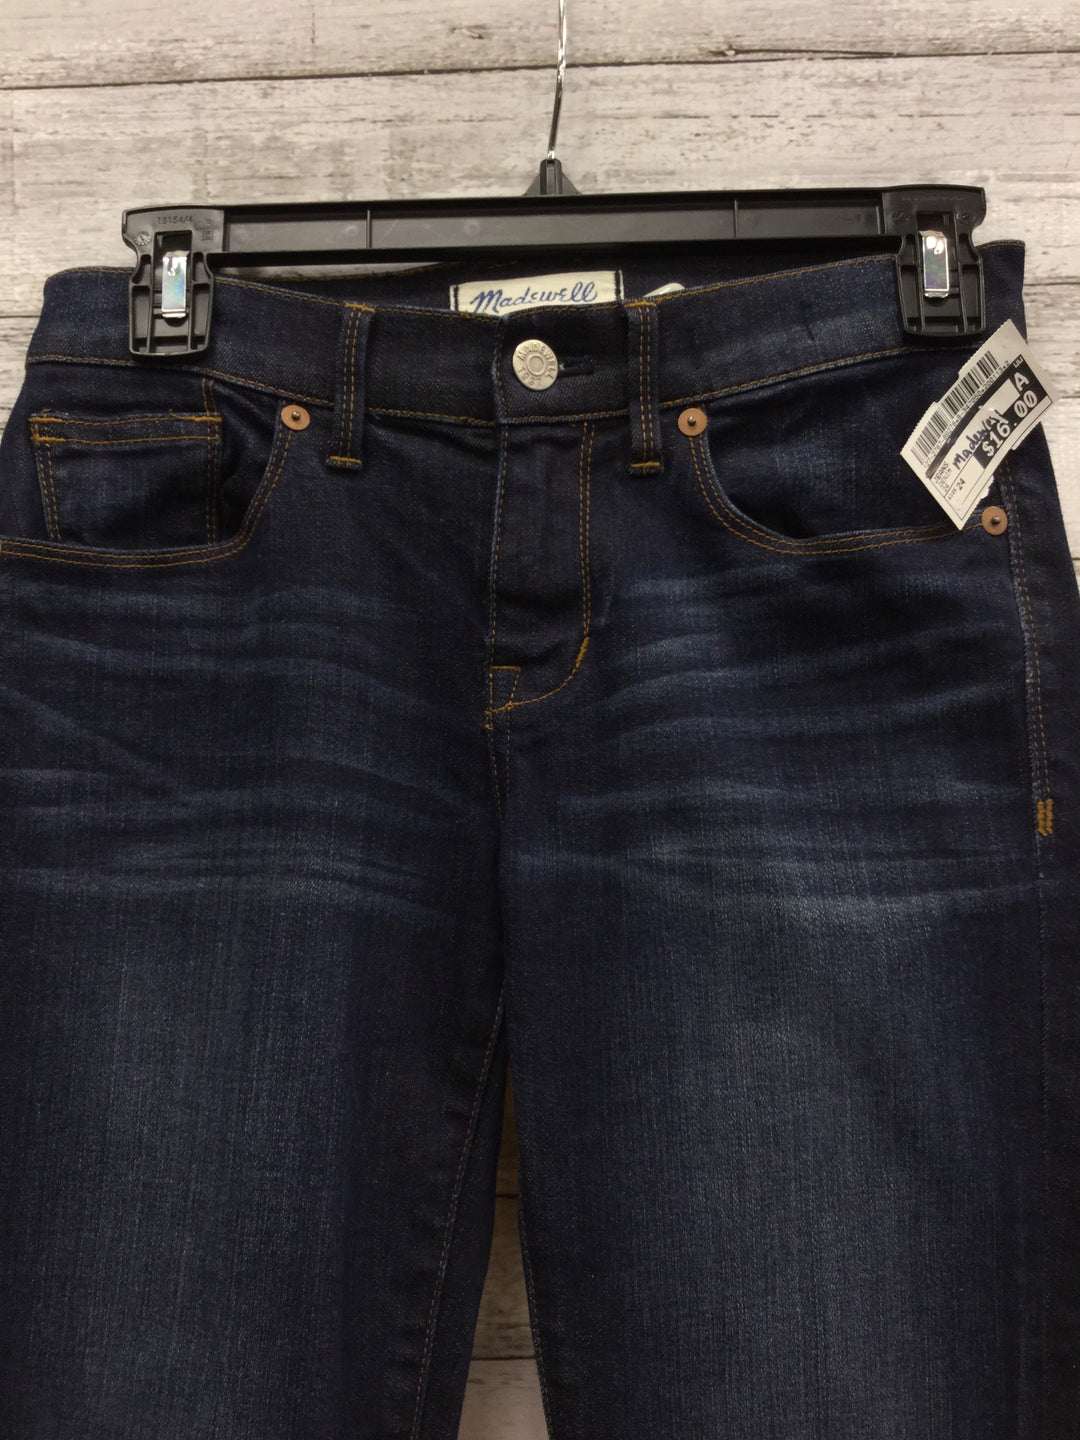 Photo #1 - BRAND: MADEWELL, STYLE: JEANS , COLOR: DENIM , SIZE: 24 , SKU: 127-2767-89276, , 24 INCH WAIST SKINNY JEANS.